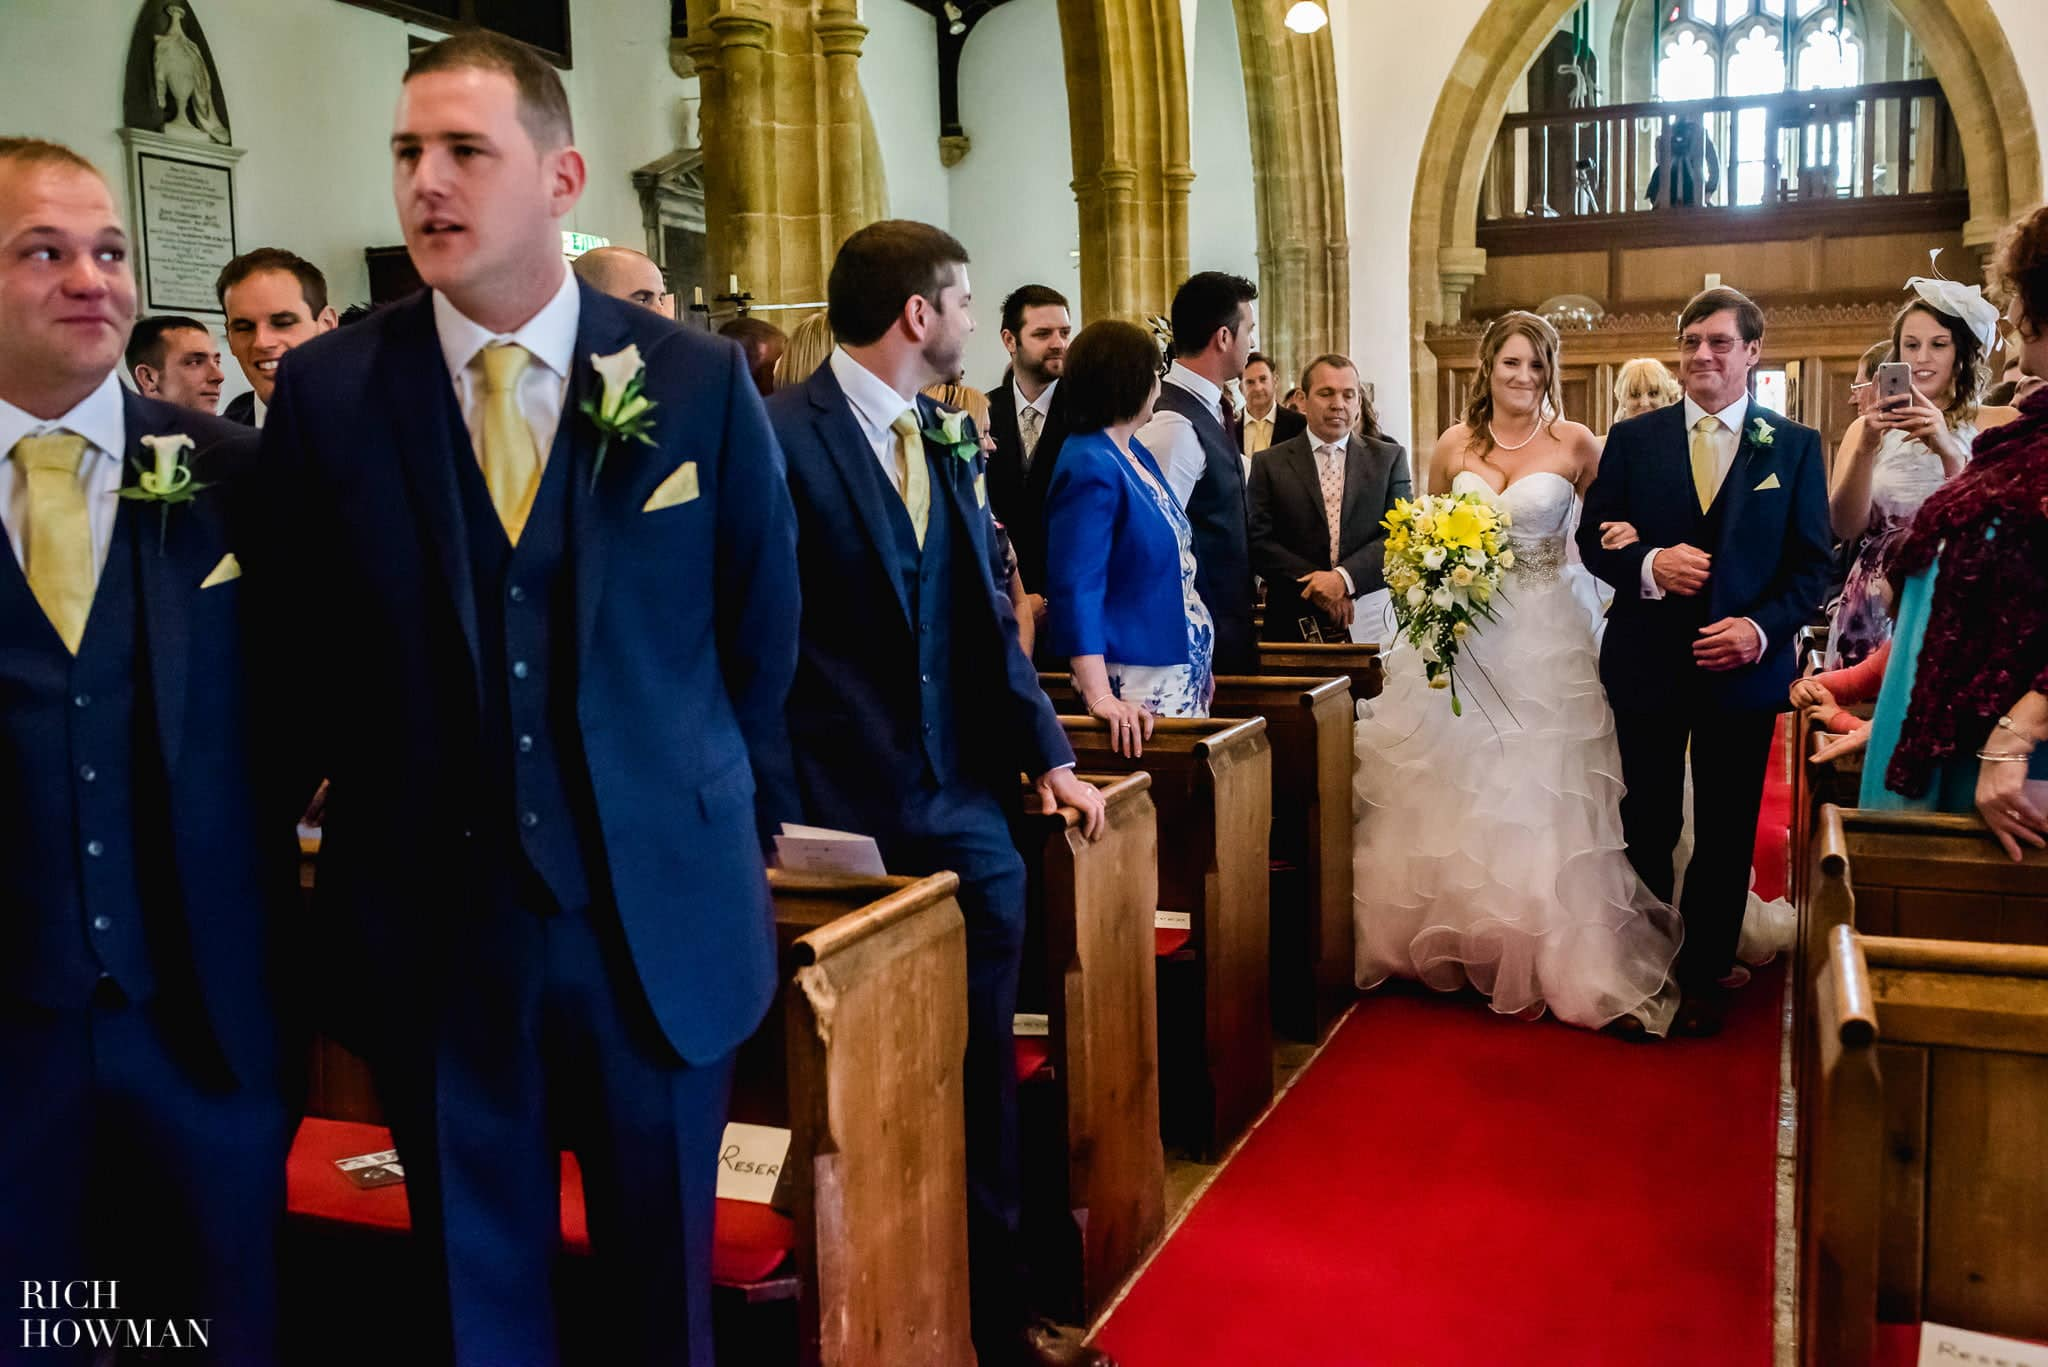 Walking up the aisle on her fathers arm to the waiting groom